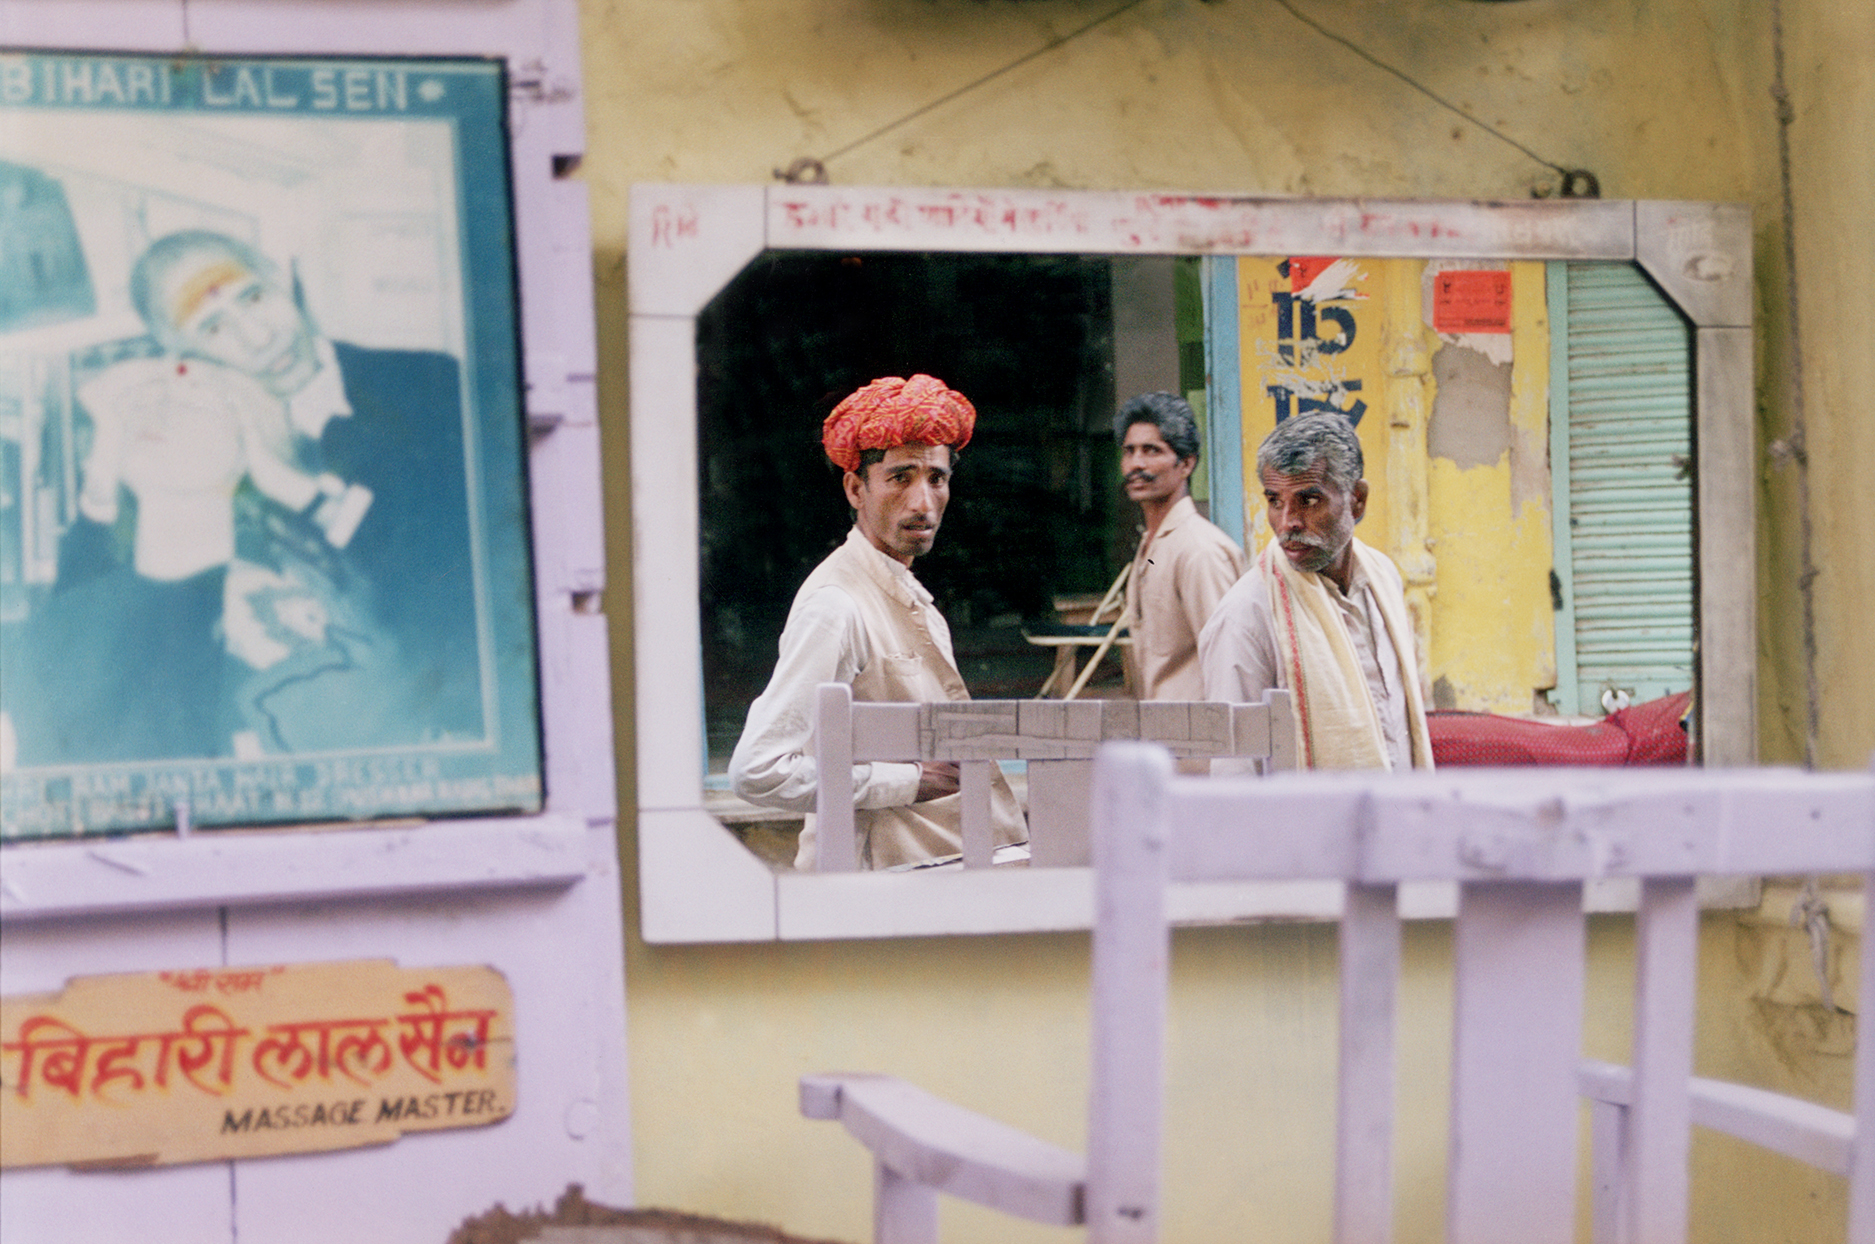 Reflection of a man walking down the street in Pushkar, India. By Jessica Scranton